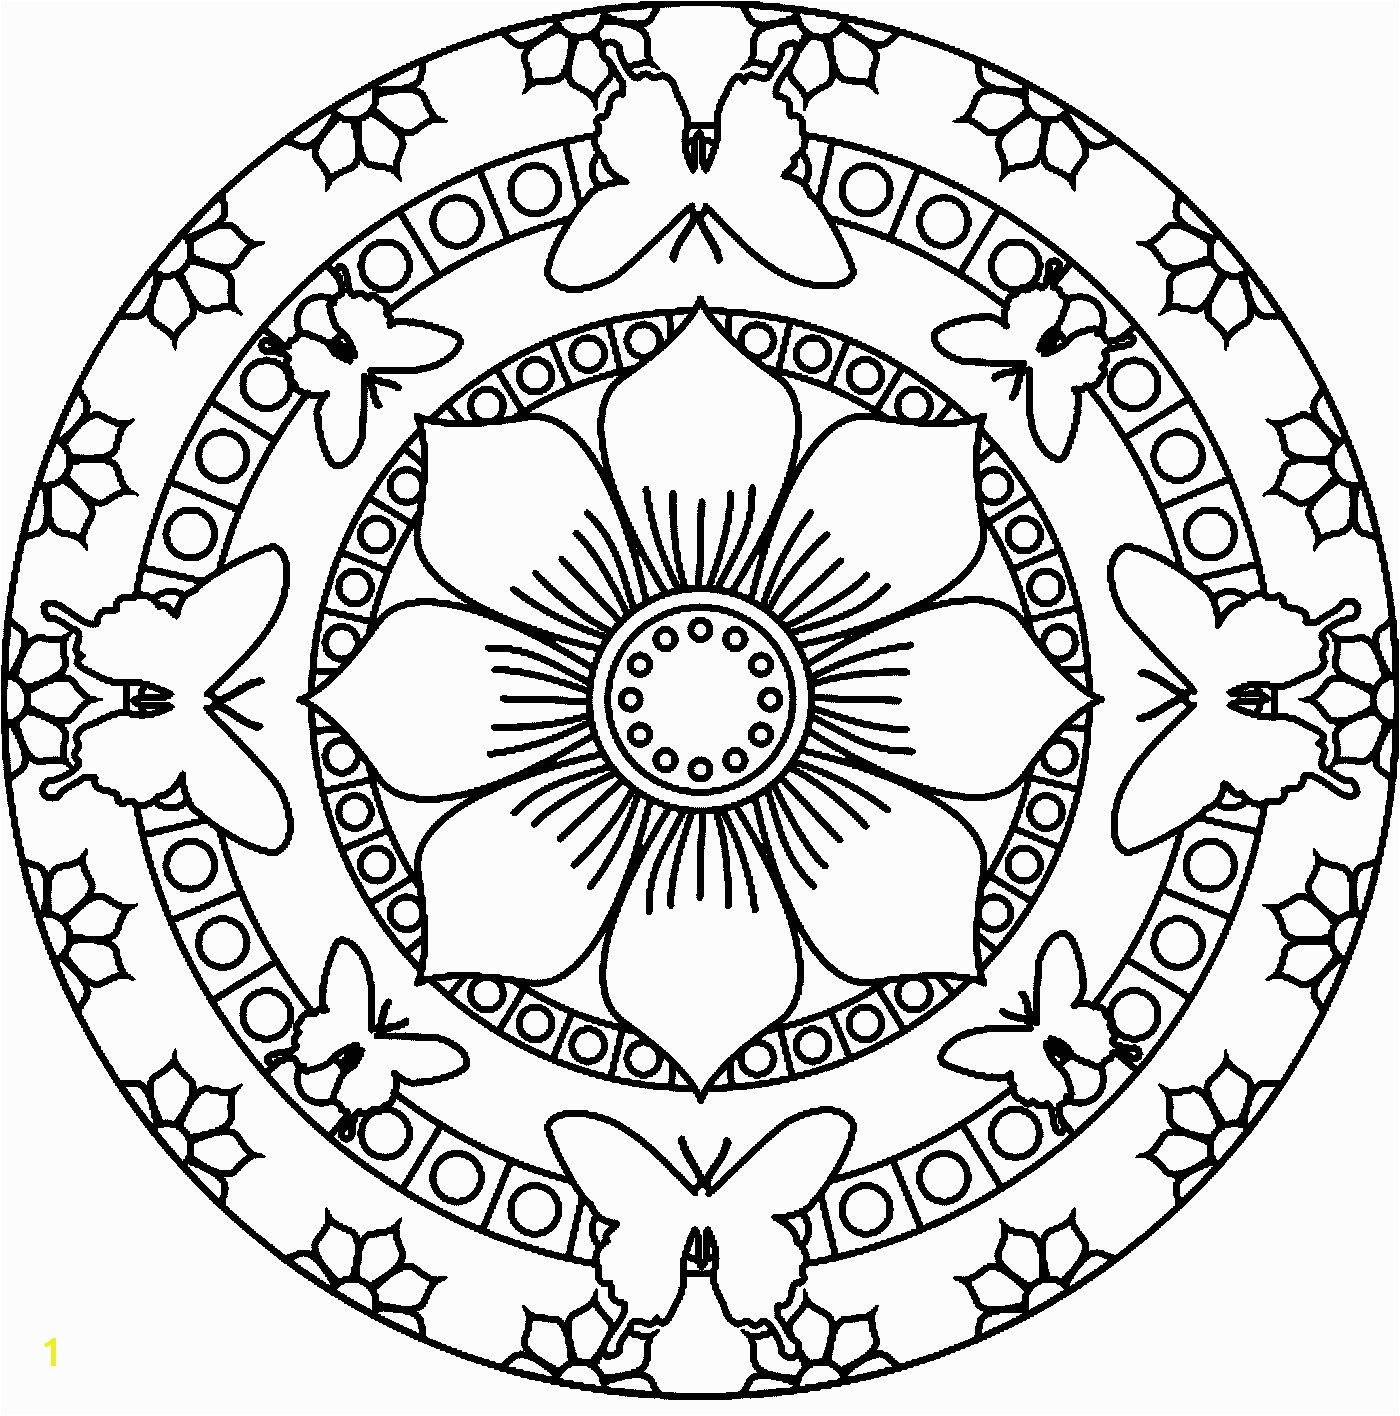 Simple Mandala Coloring Pages Printable Simple Mandala Coloring Pages Printable Download